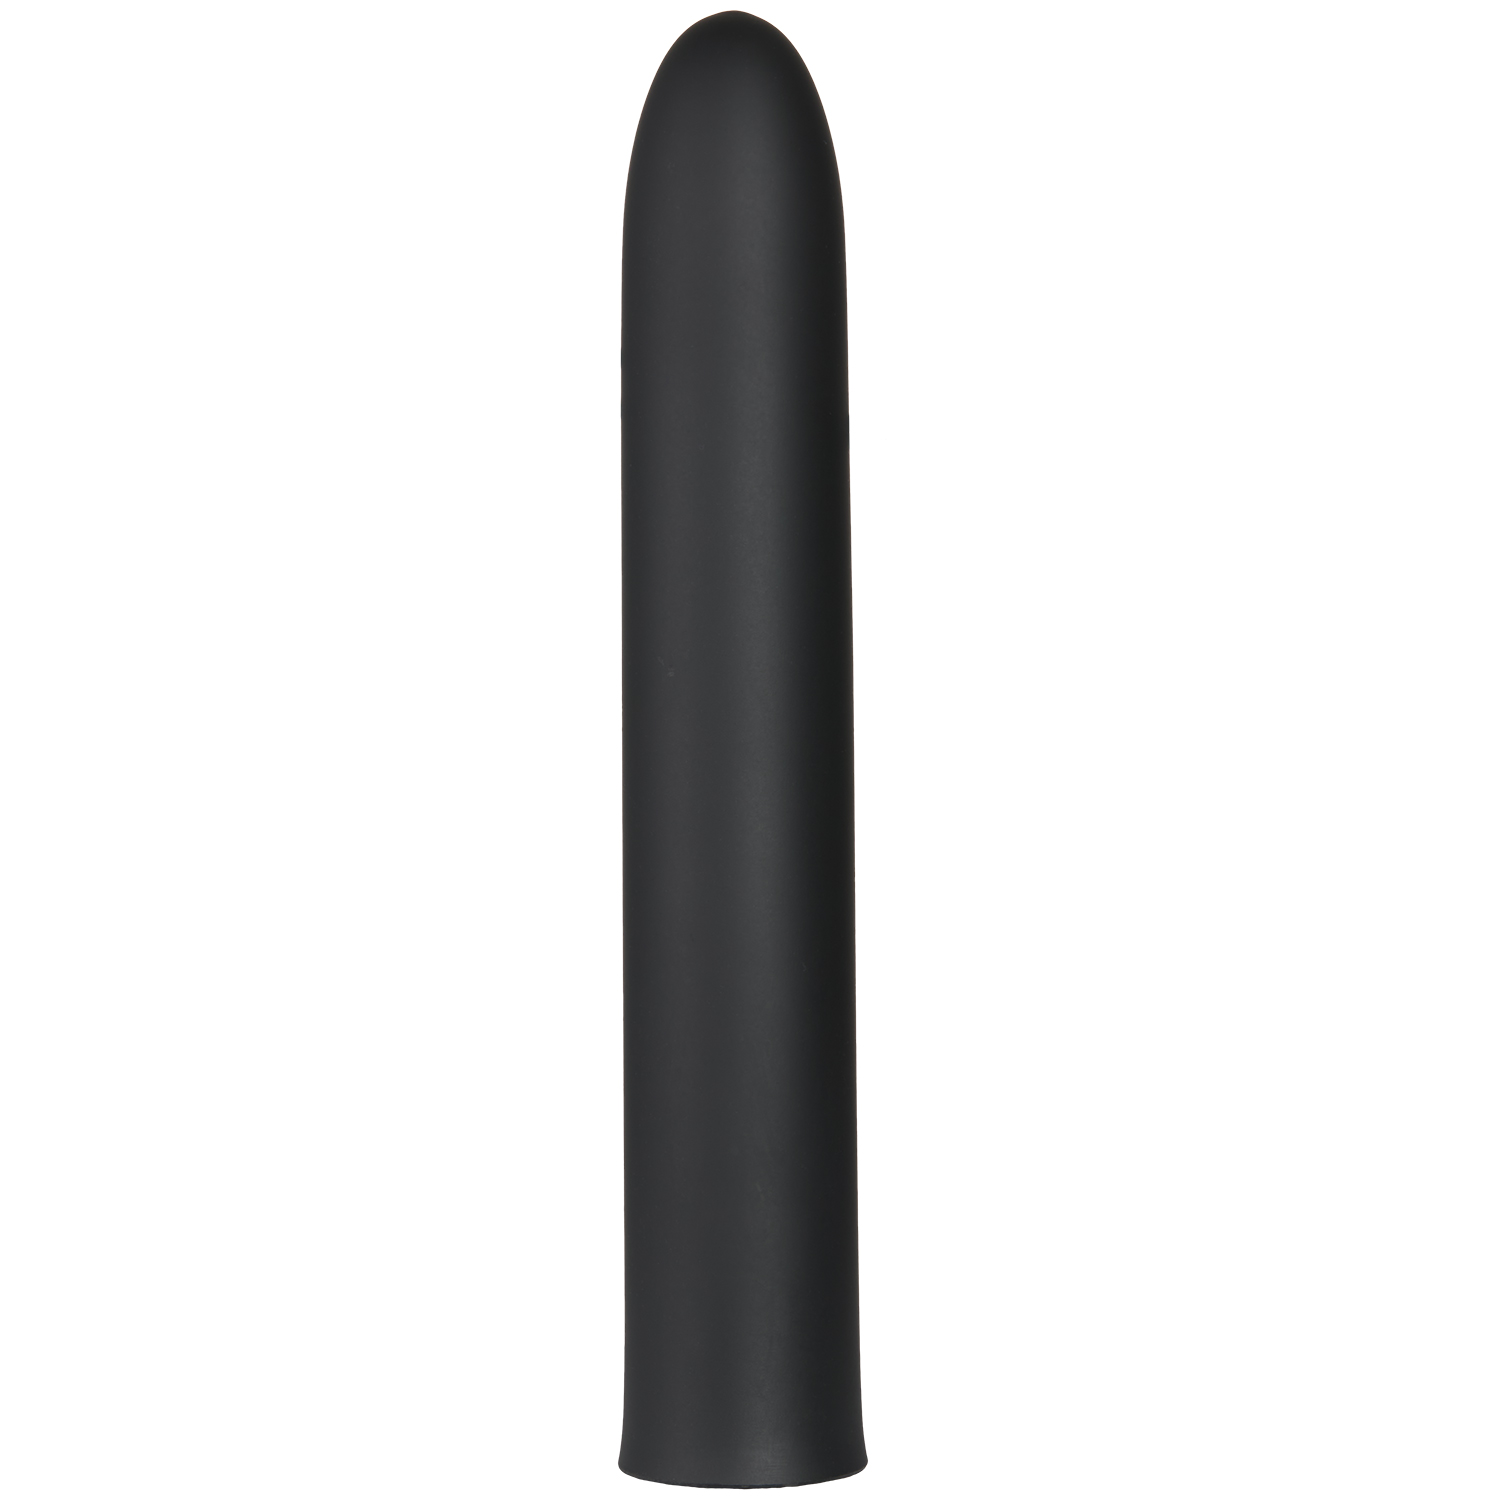 Sinful Thrill Bullet 10 Funktions Vibrator Opladelig